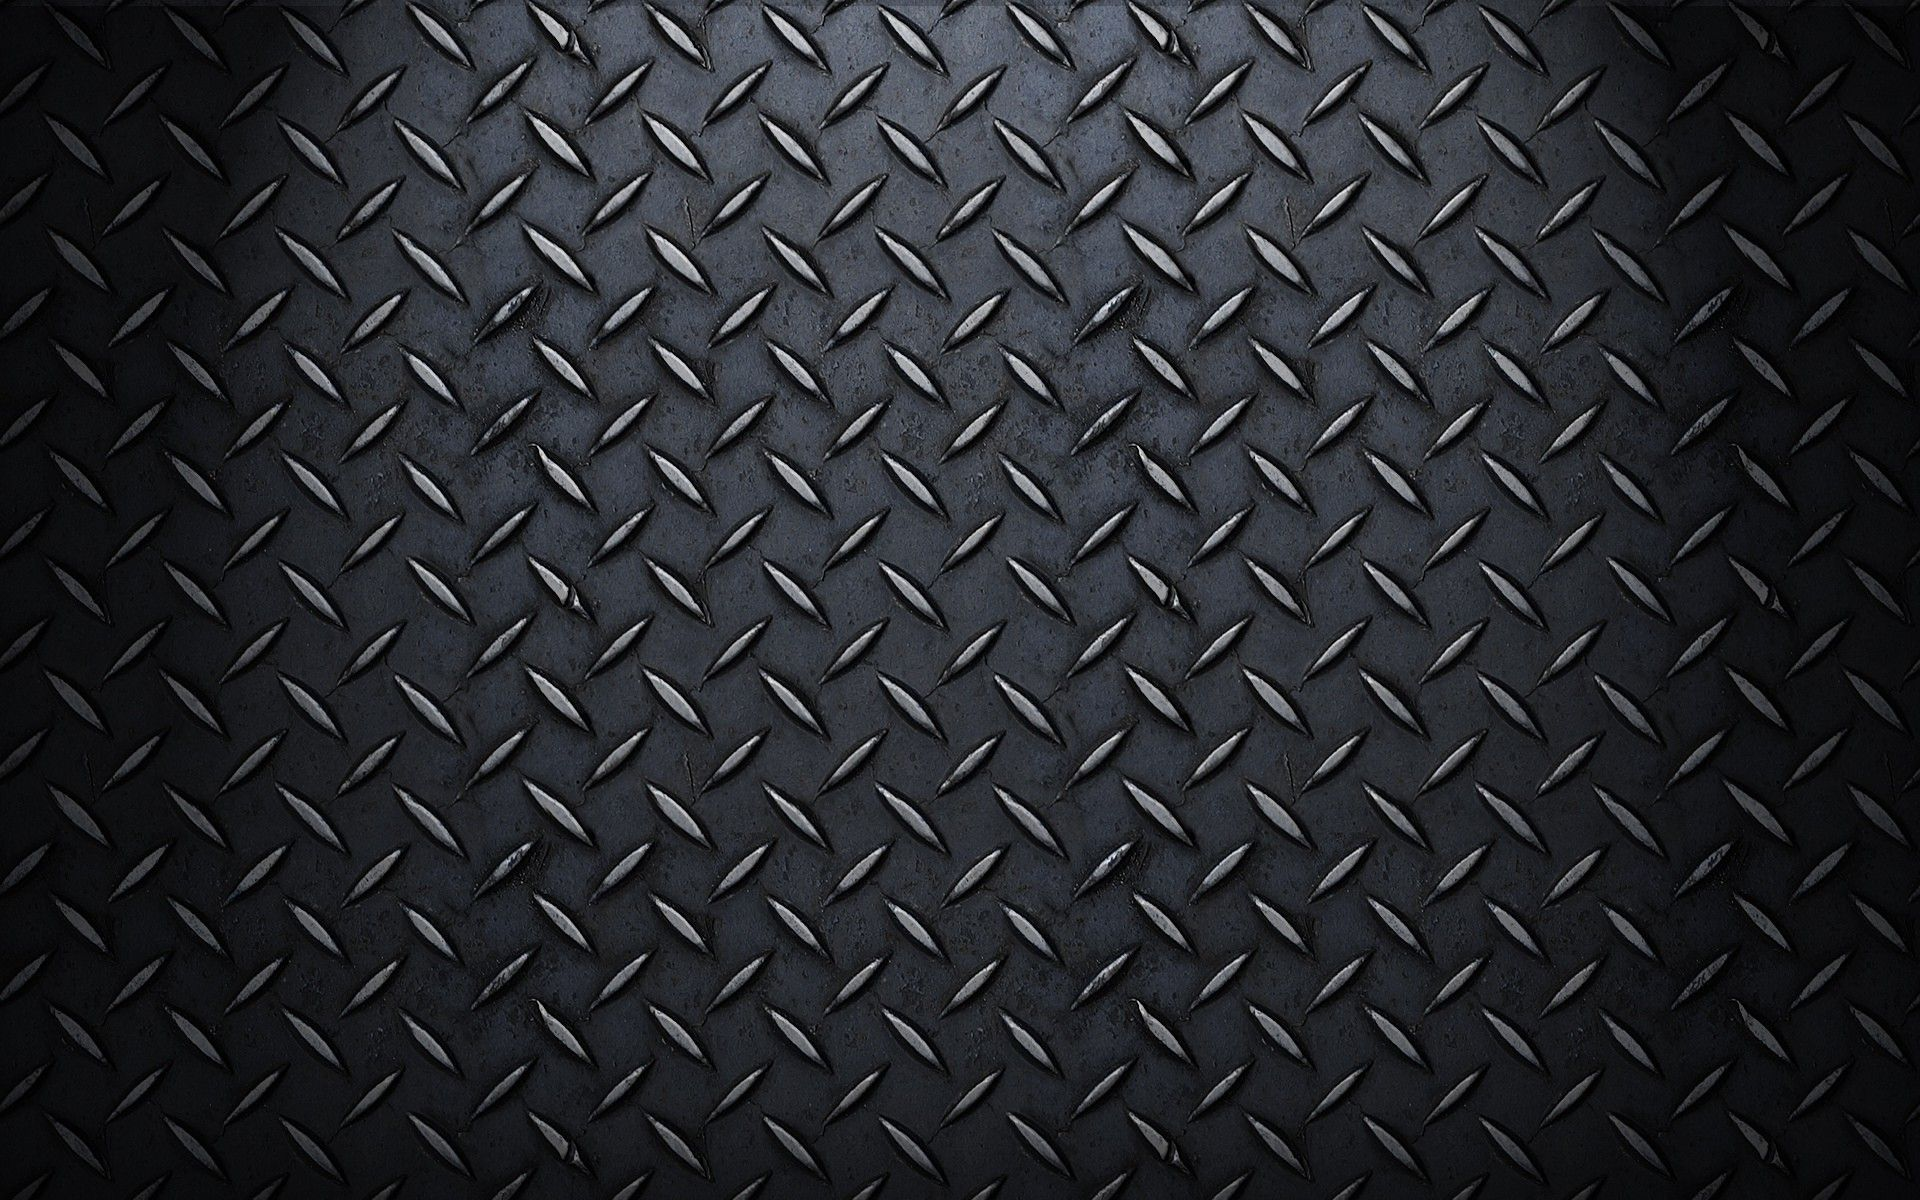 1920x1200 Carbon Fiber Backgrounds | PixelsTalk.Net